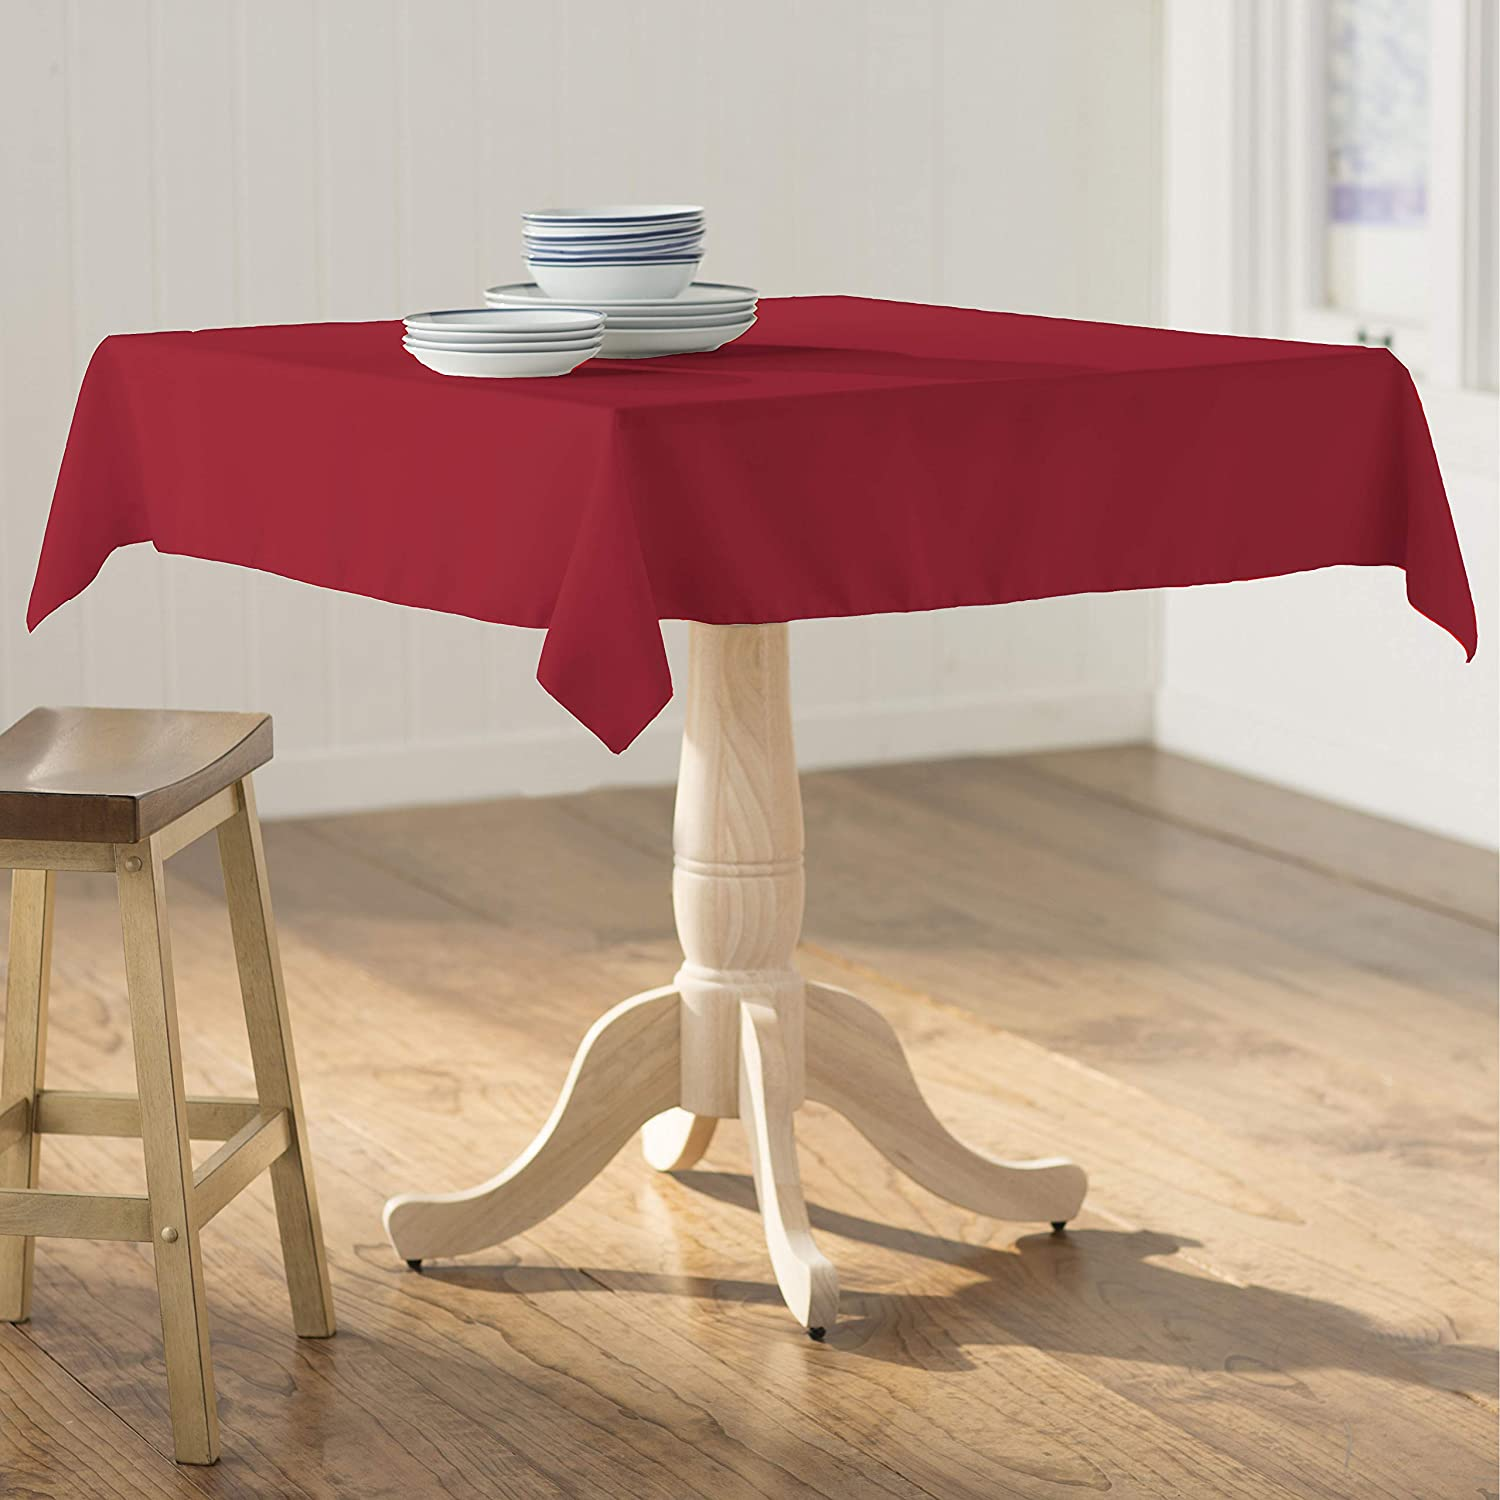 58 by 58-Inch LA Linen Polyester Poplin Tablecloth Brown